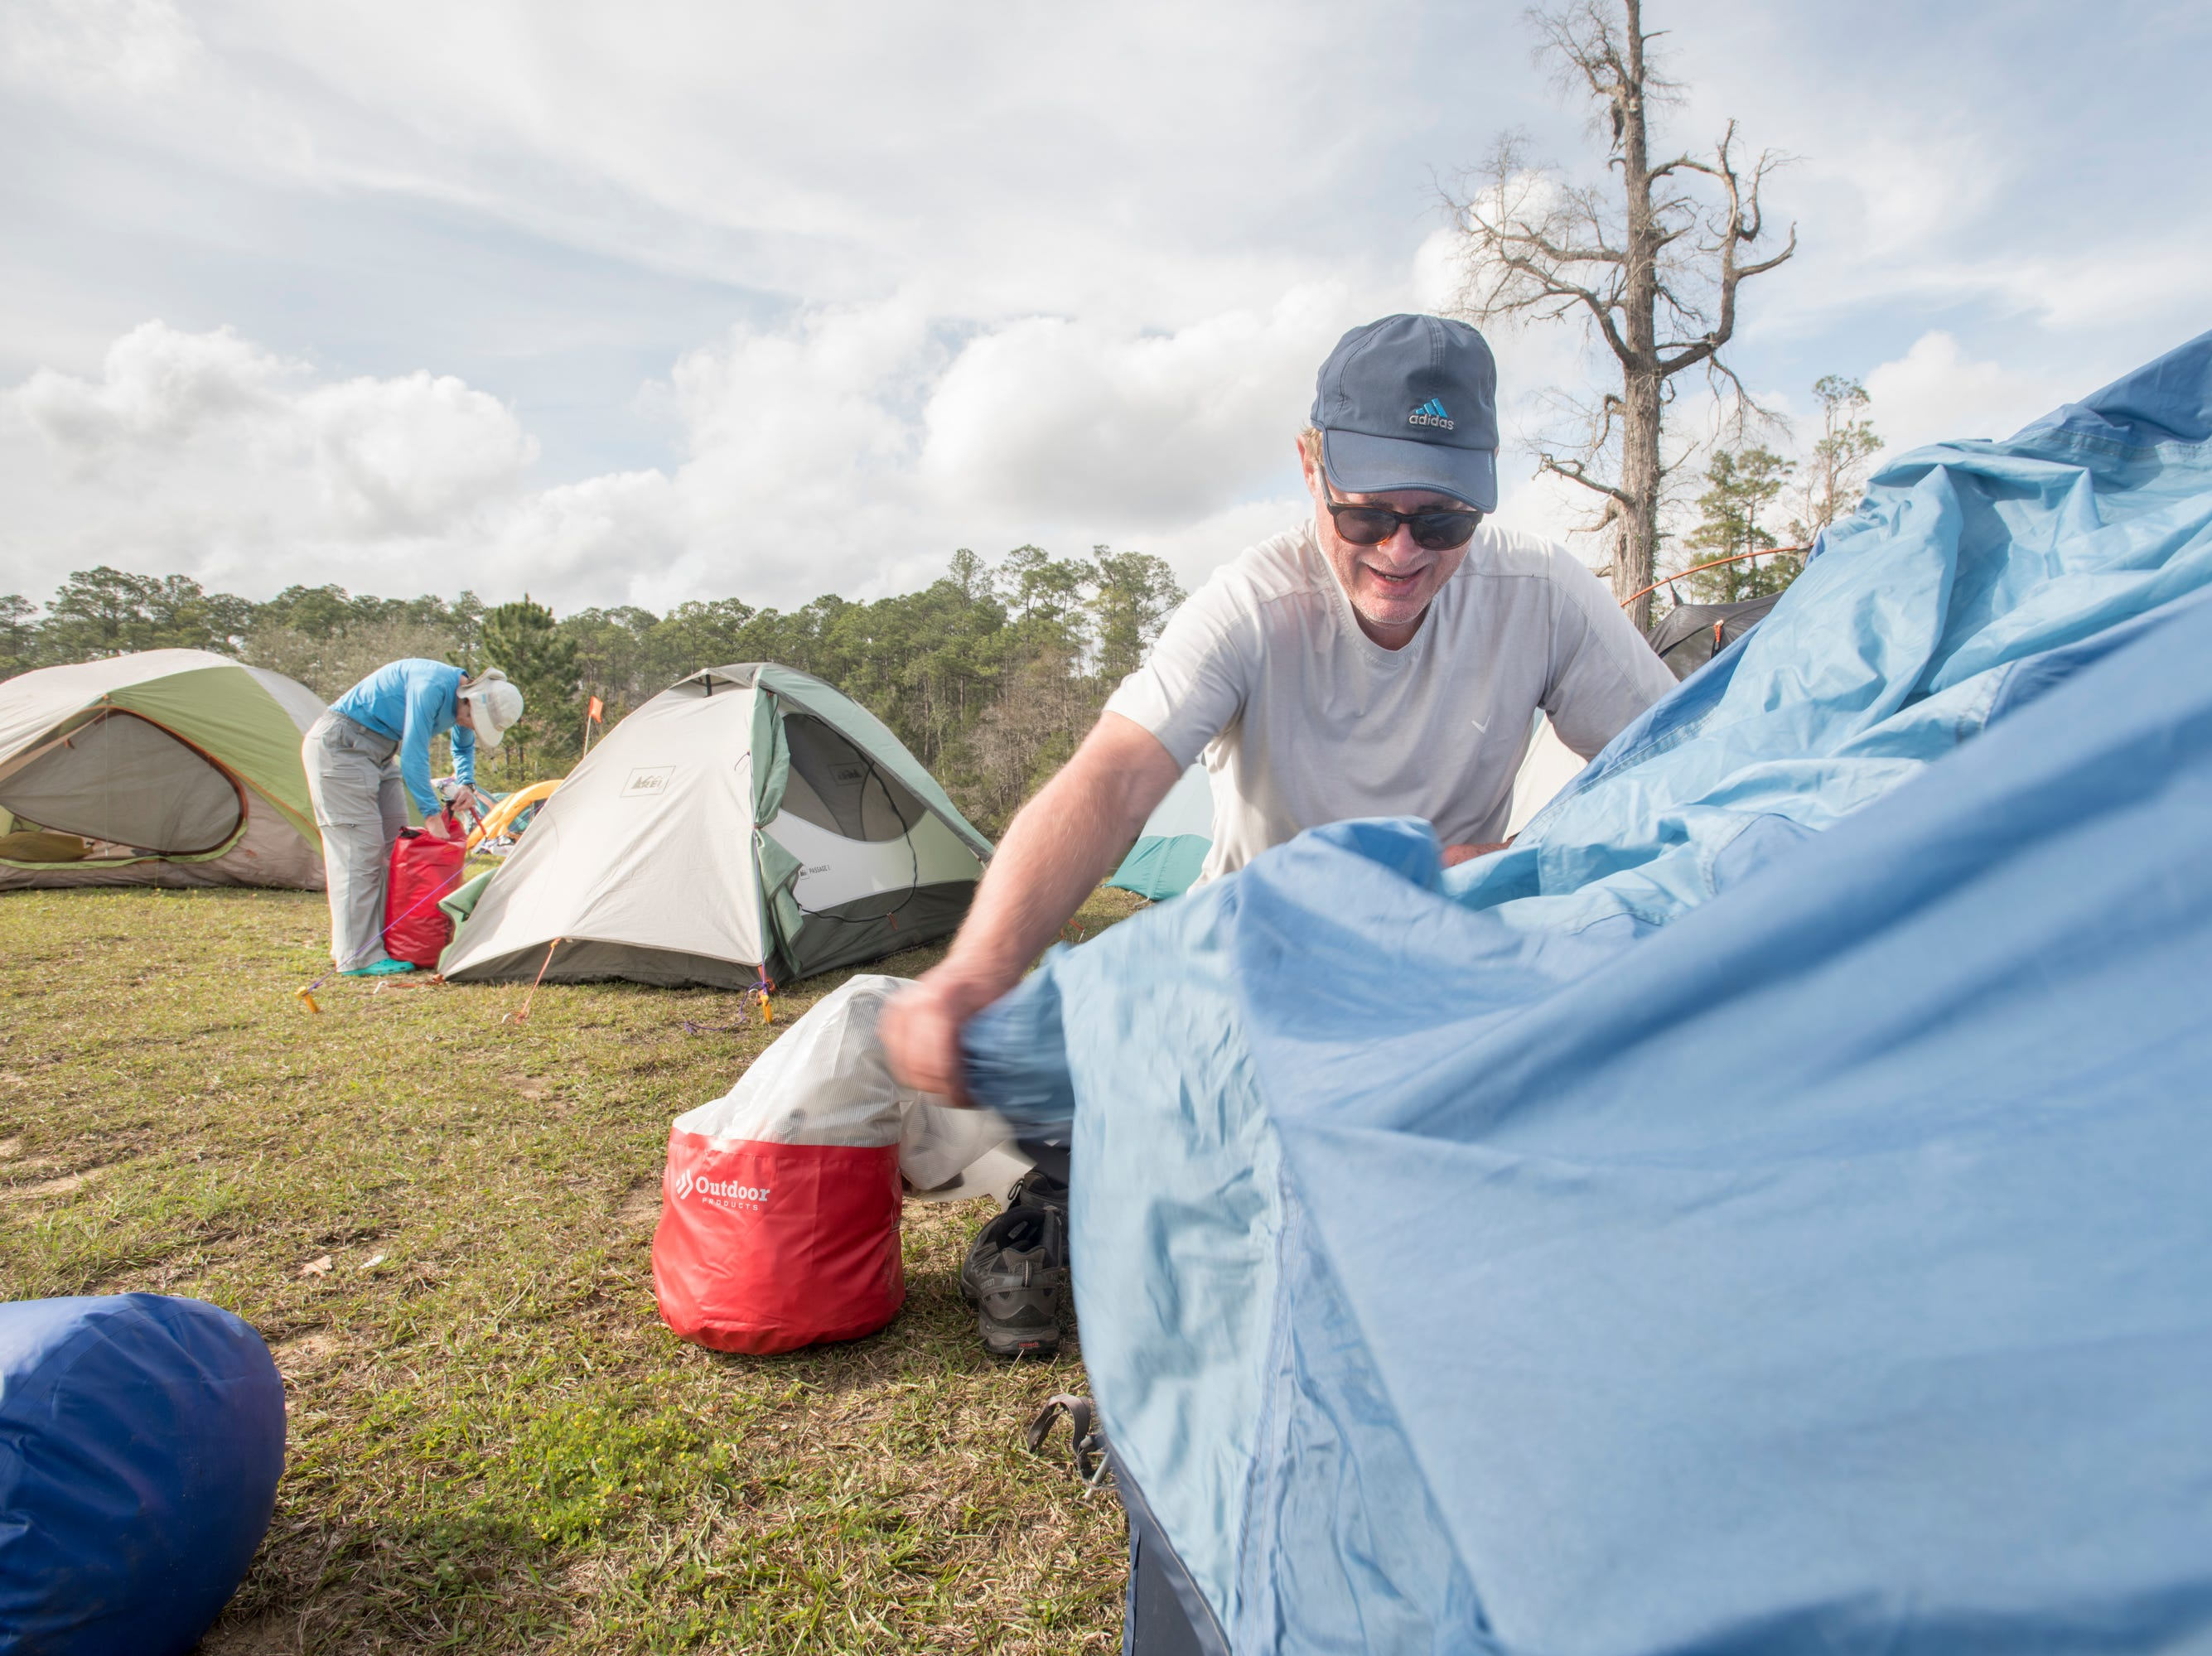 Jeff Wallace, of Fairhope, Alabama sets up his tent at the Wilson Robertson Boat Ramp off the Perdido River in Pensacola on Monday, March 11, 2019.  Paddle Florida is hosting 60 paddlers on a 5-day, 60-mile journey from Otto Hill to Perdido Pass.  Florida is currently working with Alabama to establish a paddling trail on the Perdido River.